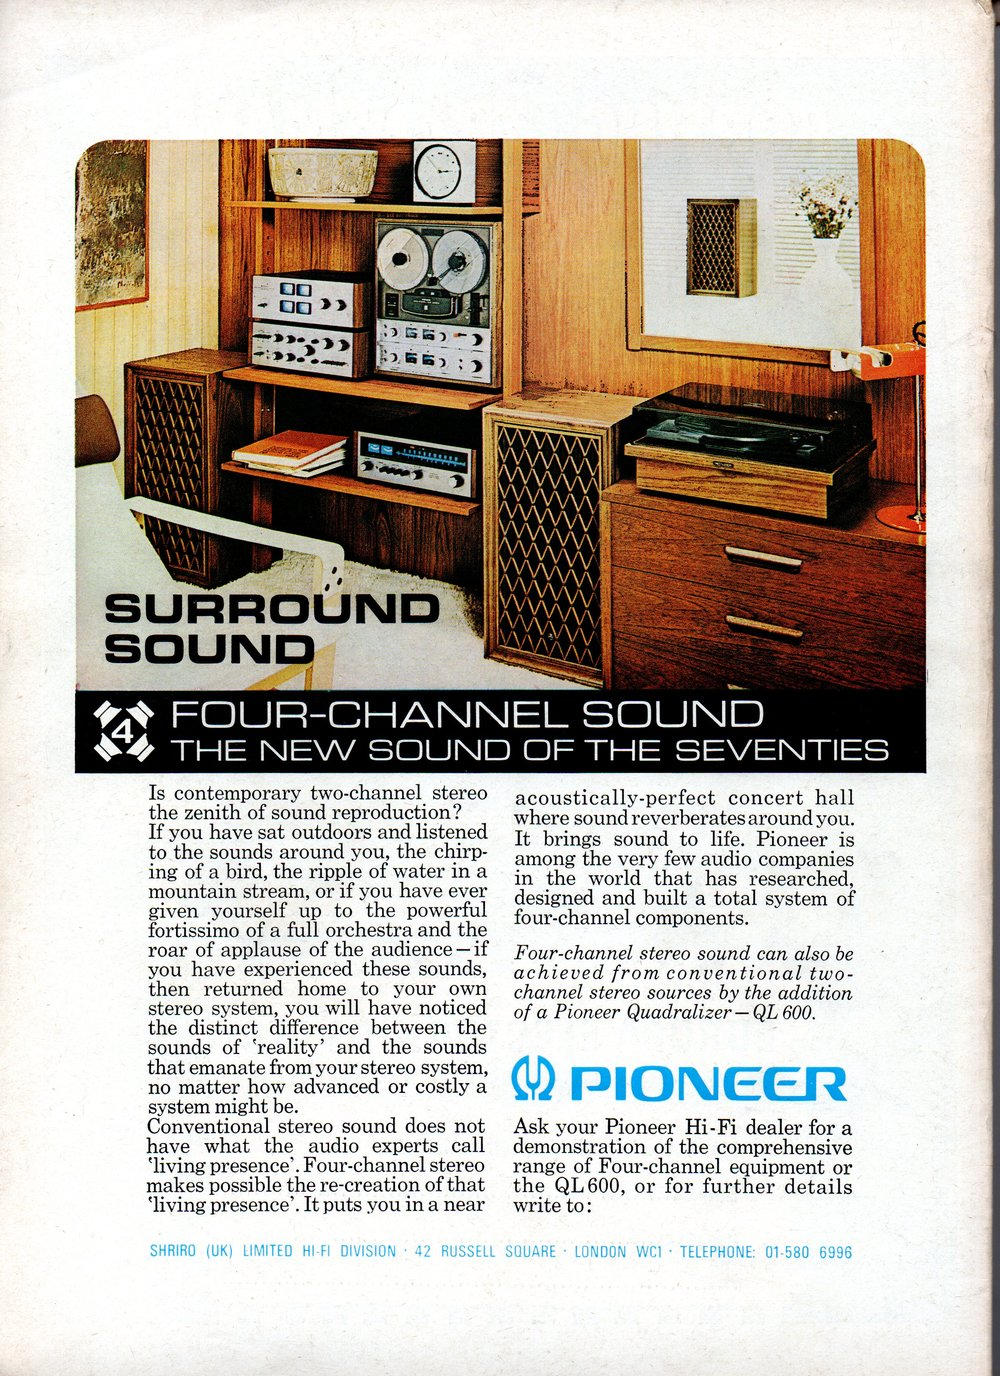 Pioneer 4-Channel Sound Advert 1972.jpg